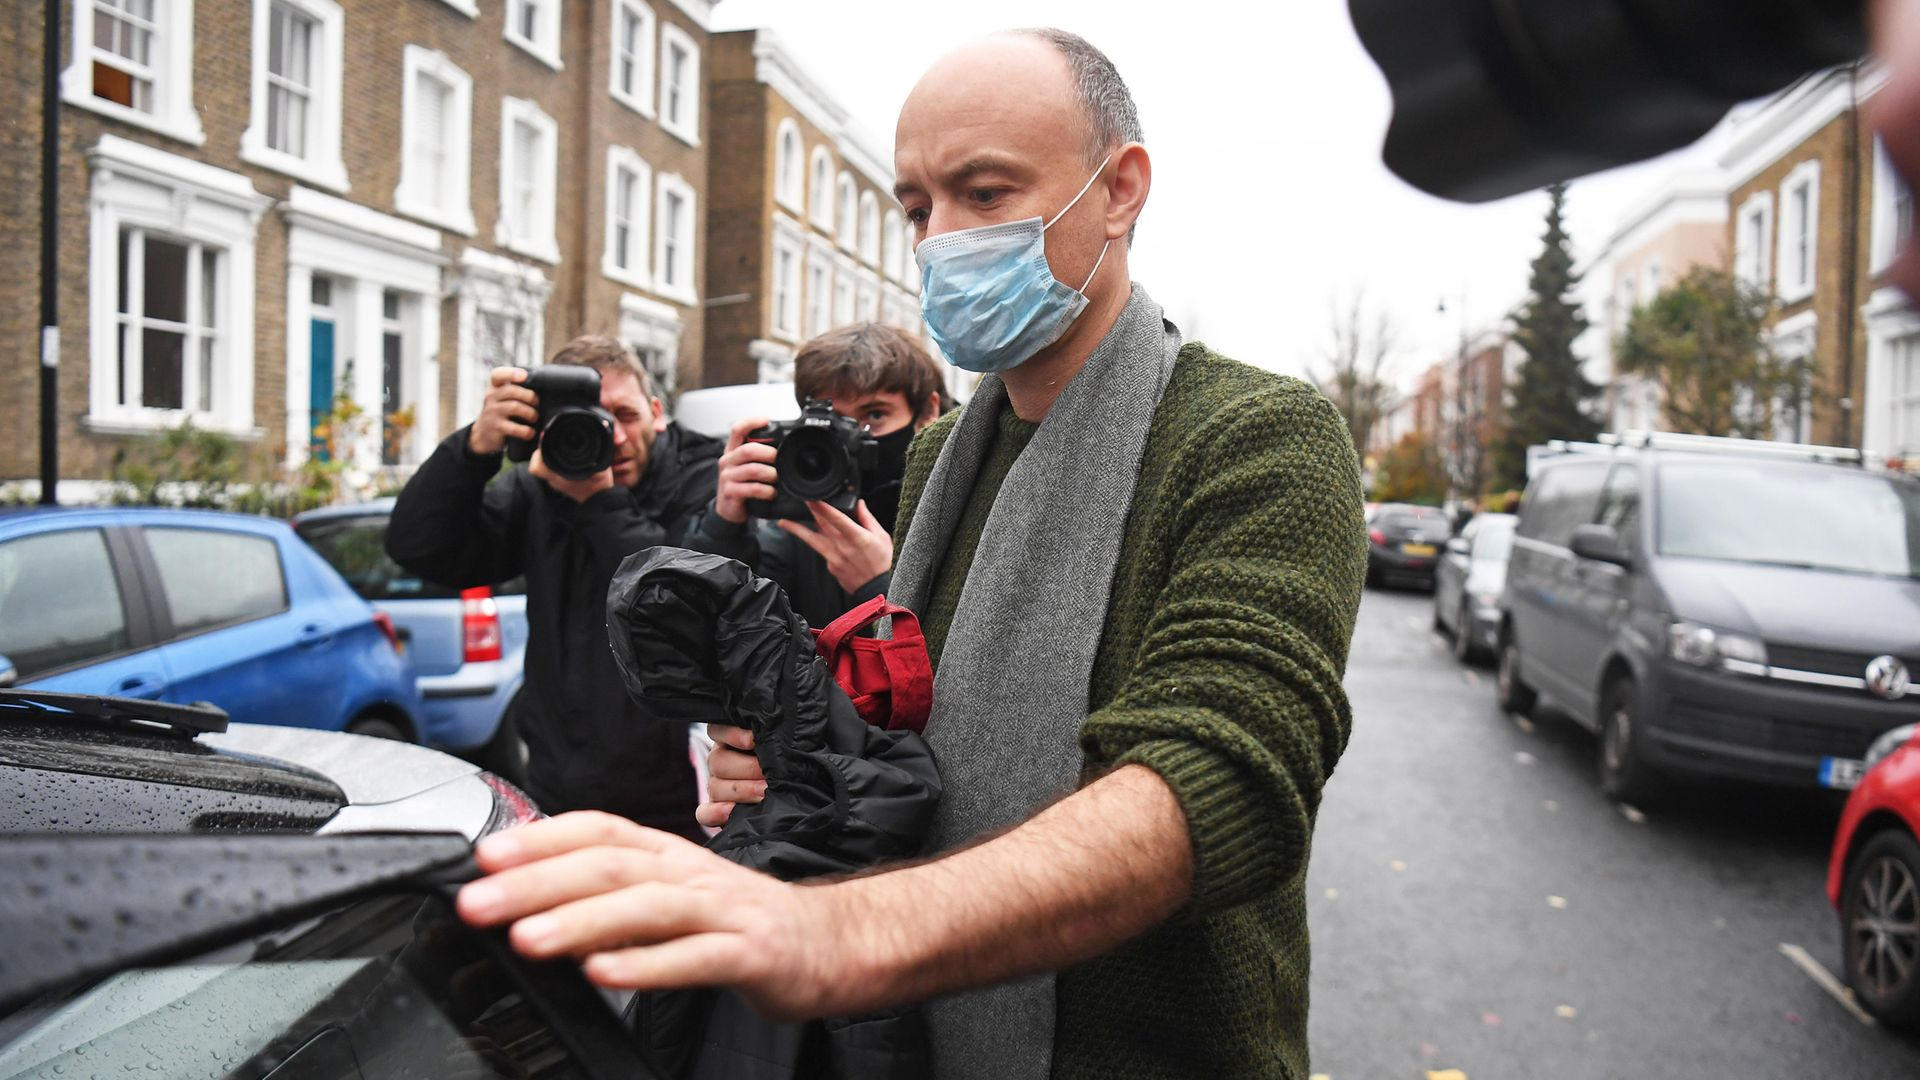 Dominic Cummings outside his north London home after he resigned from his role as Prime minister Boris Johnson's top aide - Credit: PA